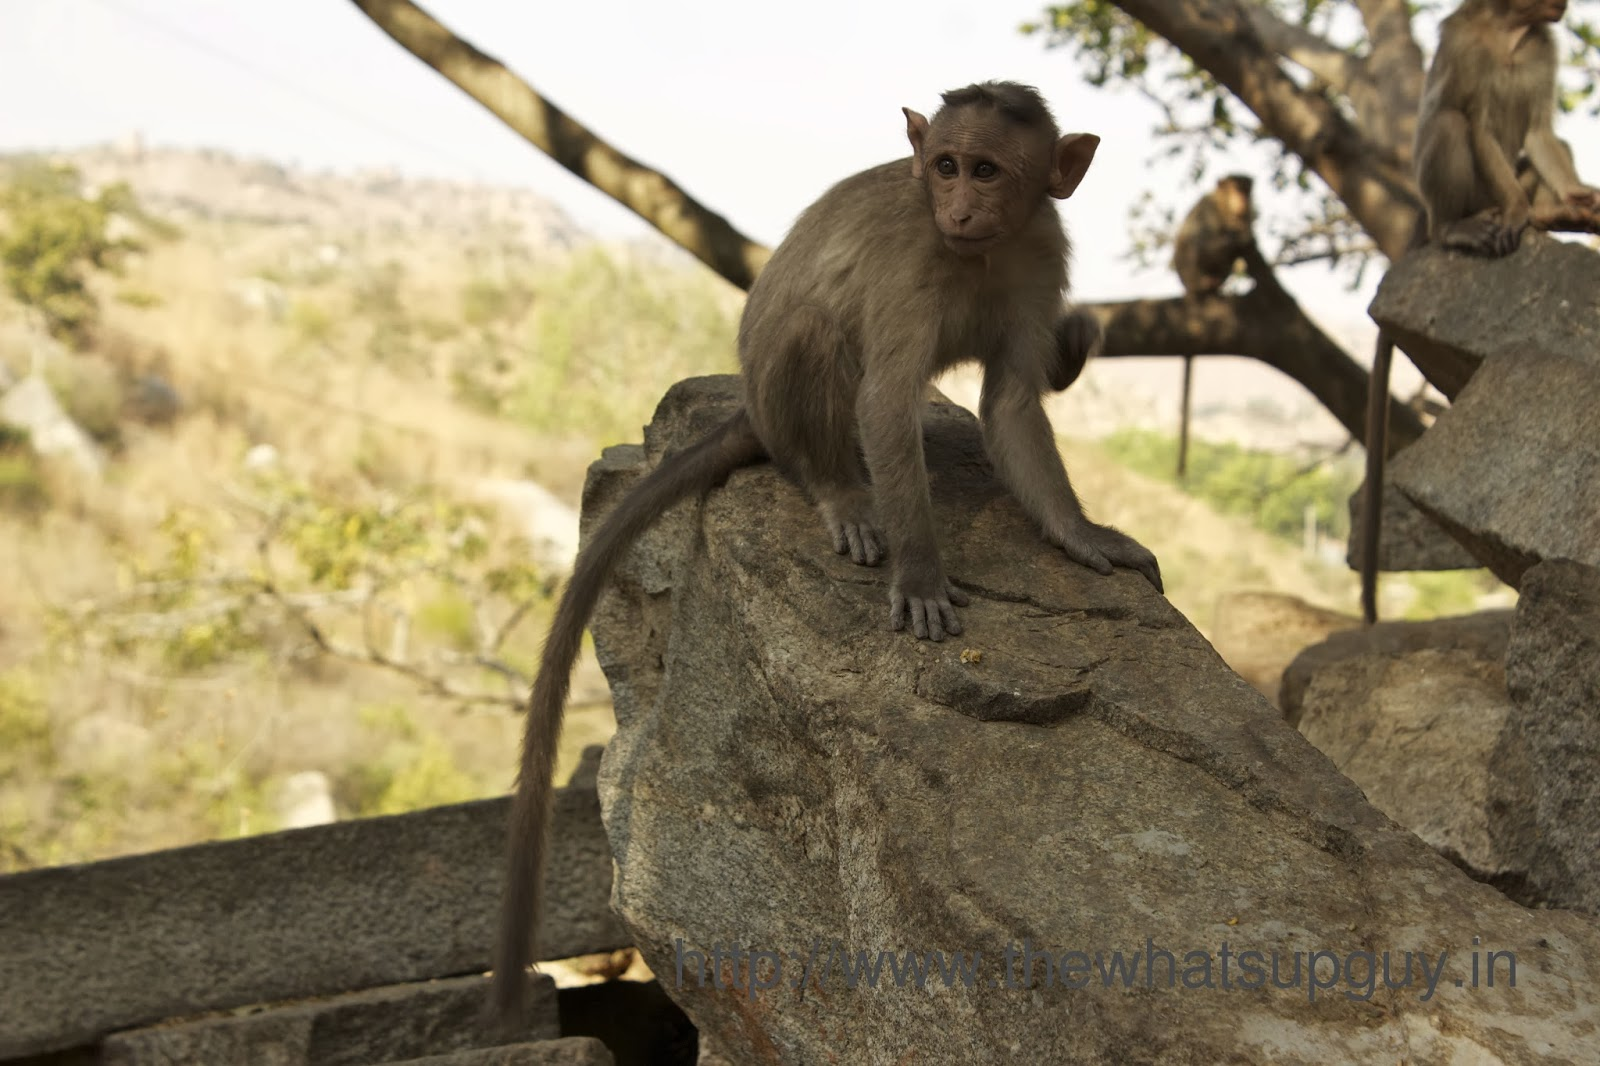 Baby Monkey Channagiri